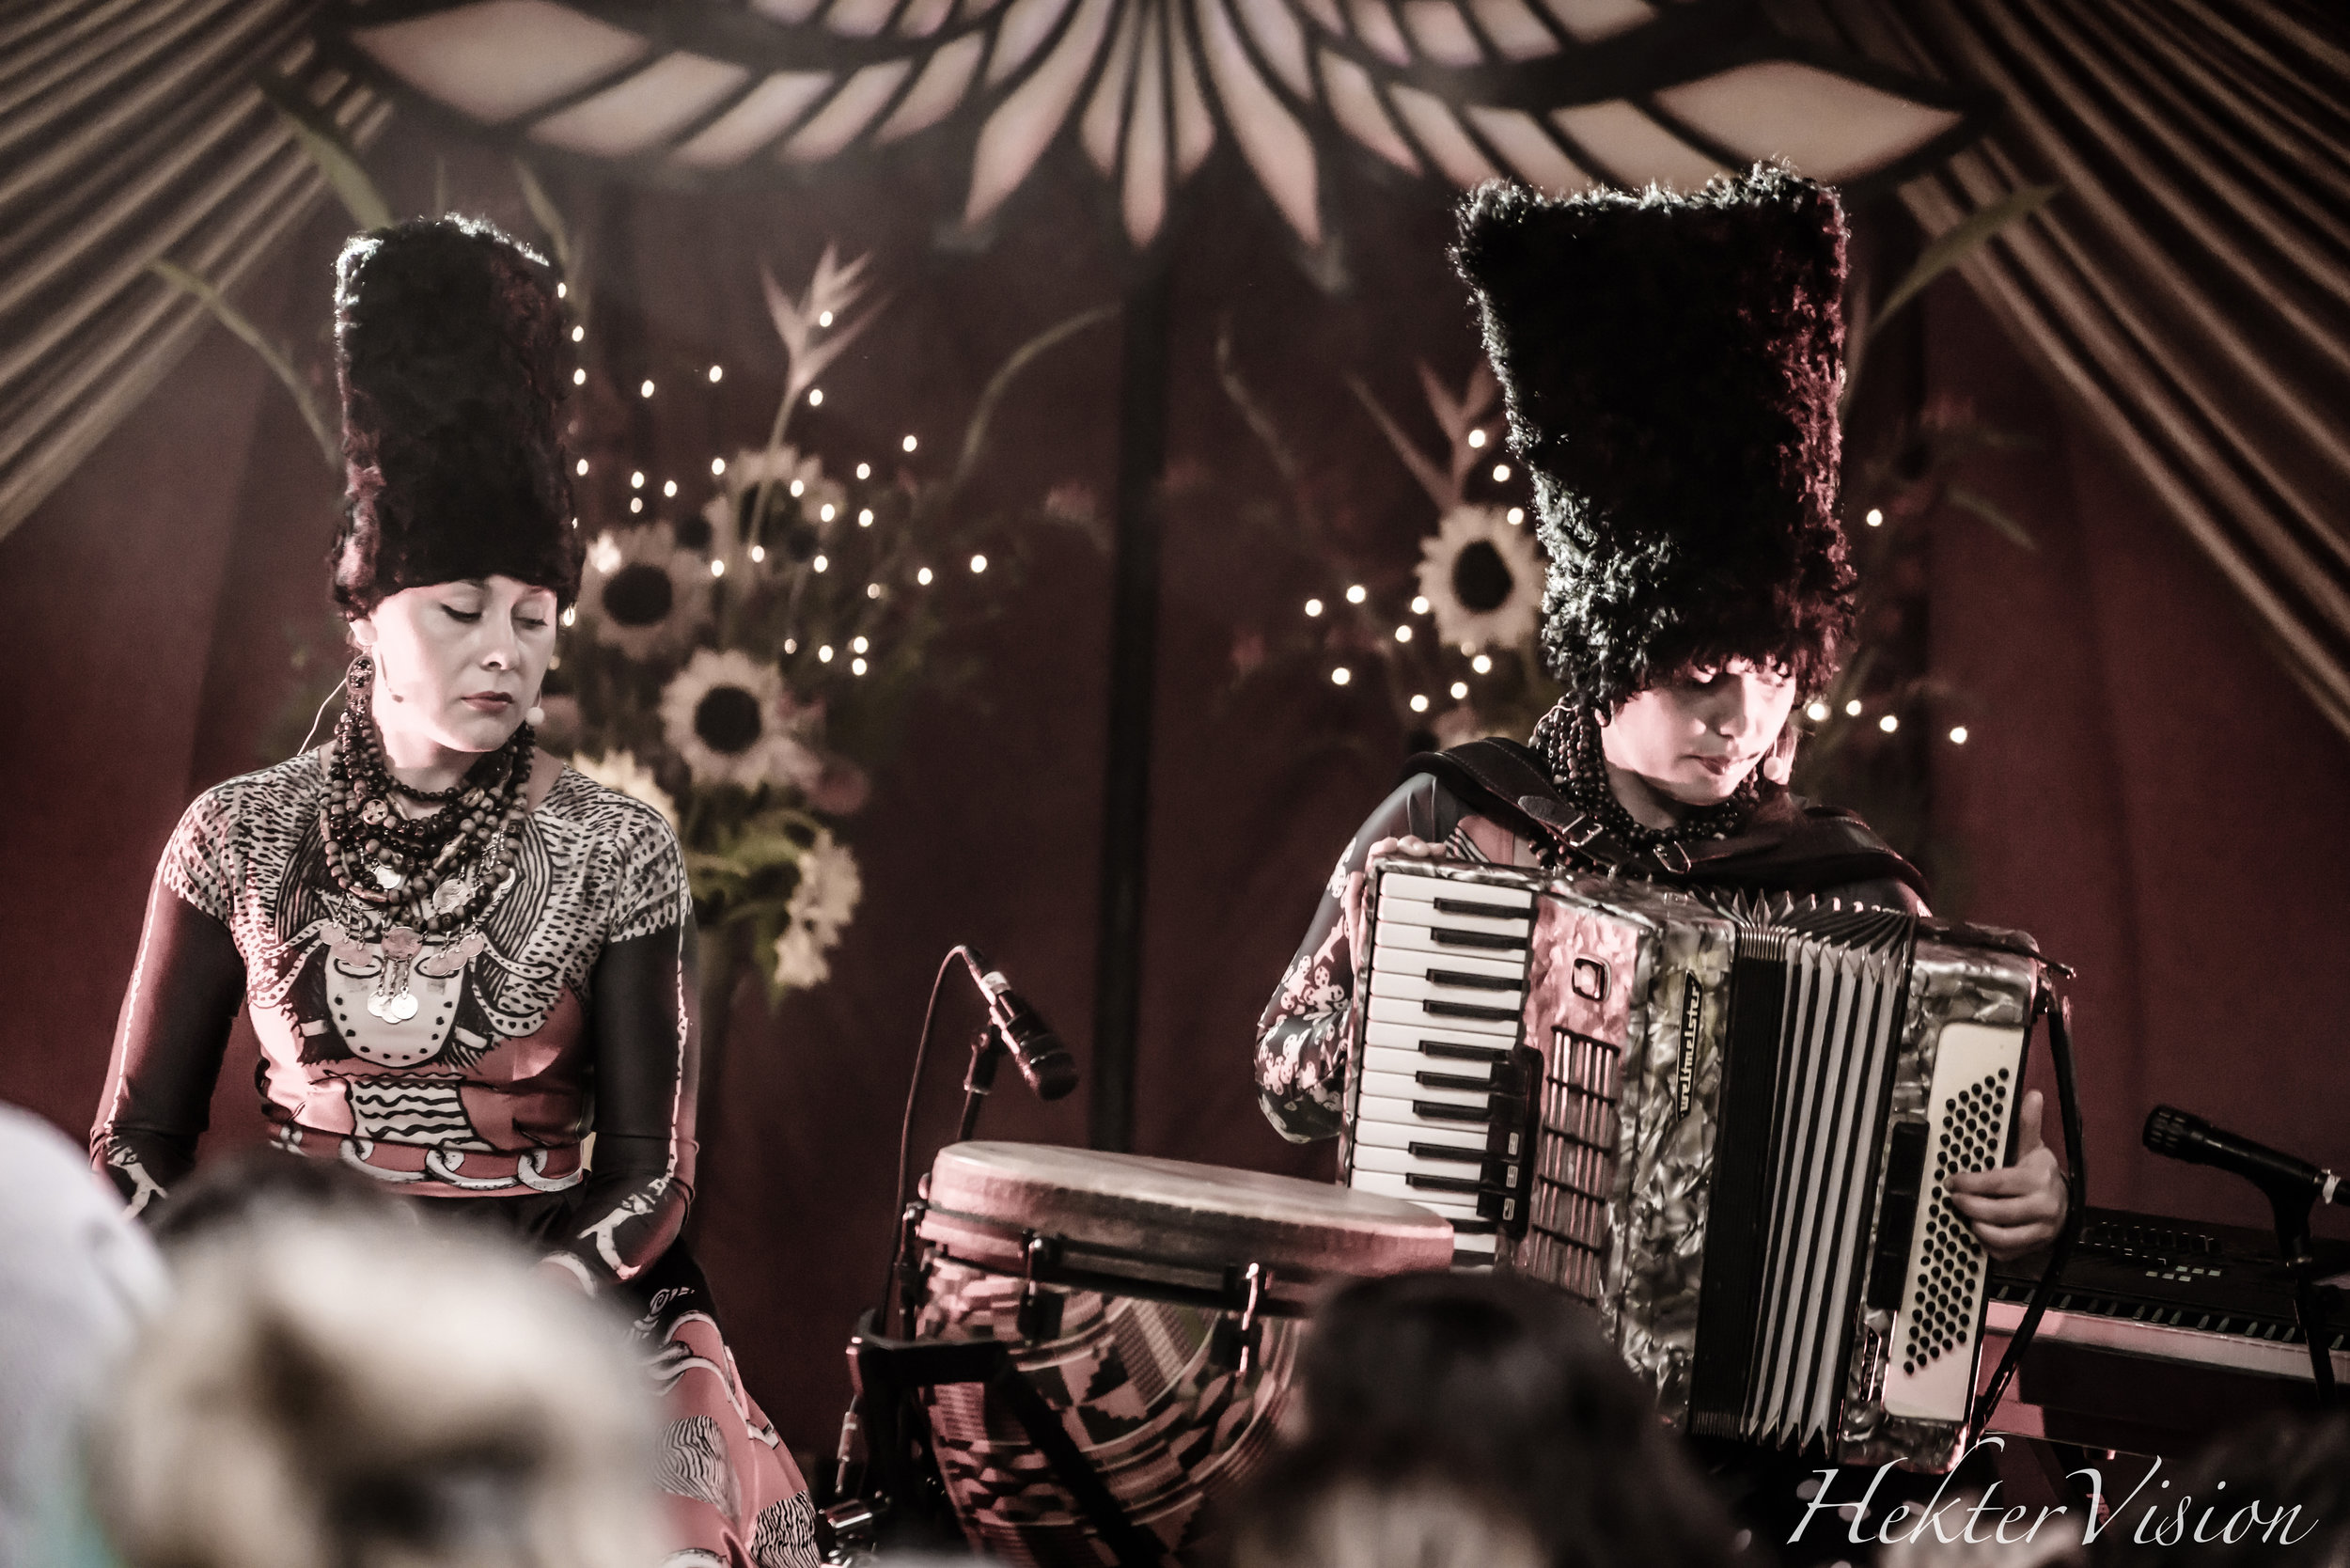 One of the standouts of the weekend, Dakhabrakha fuses traditional Ukrainian sounds with modern, funky sounds